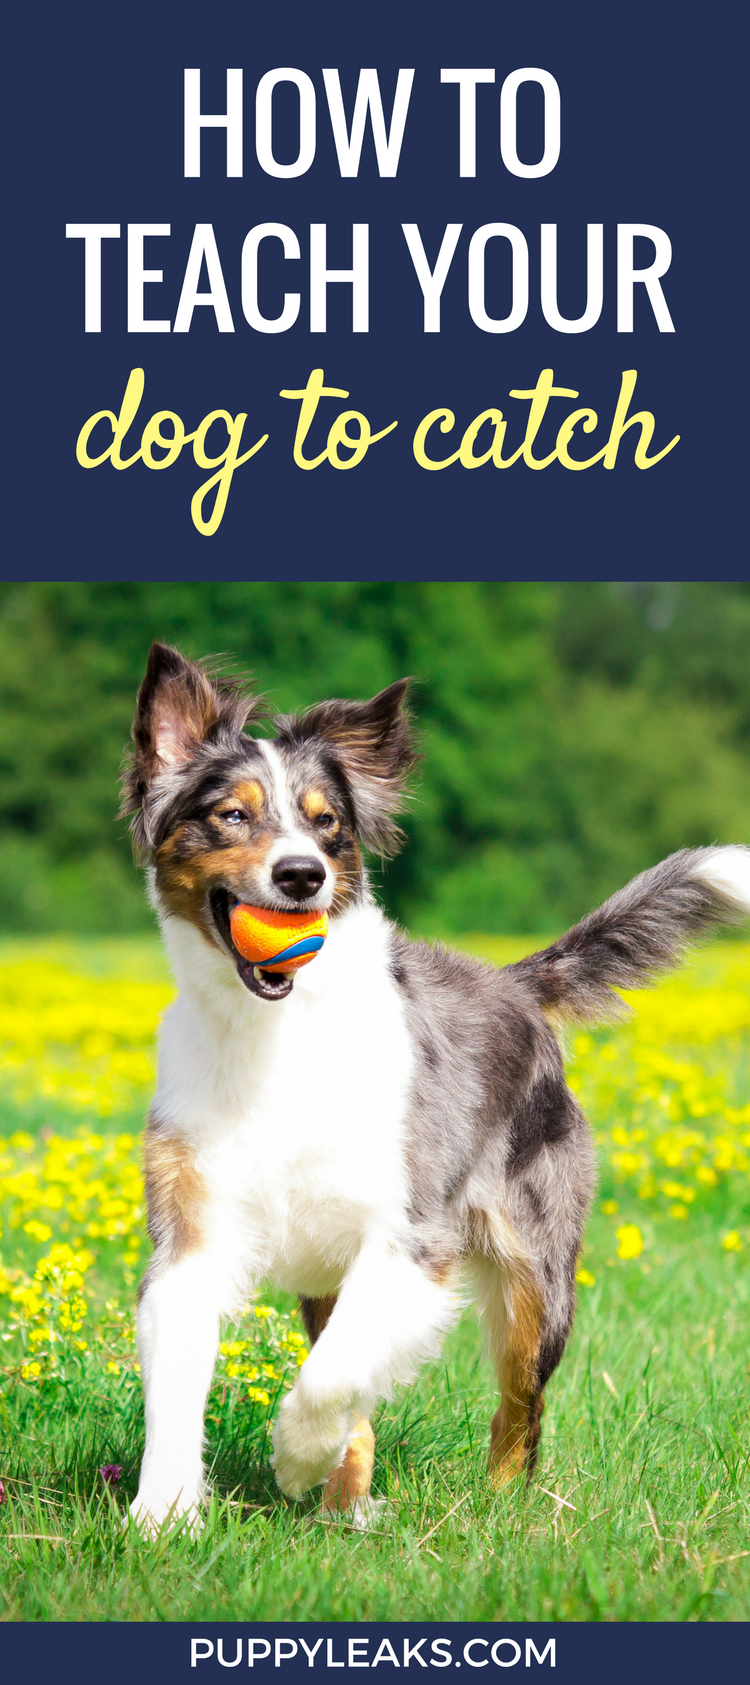 The Easy Way To Teach Your Dog To Catch